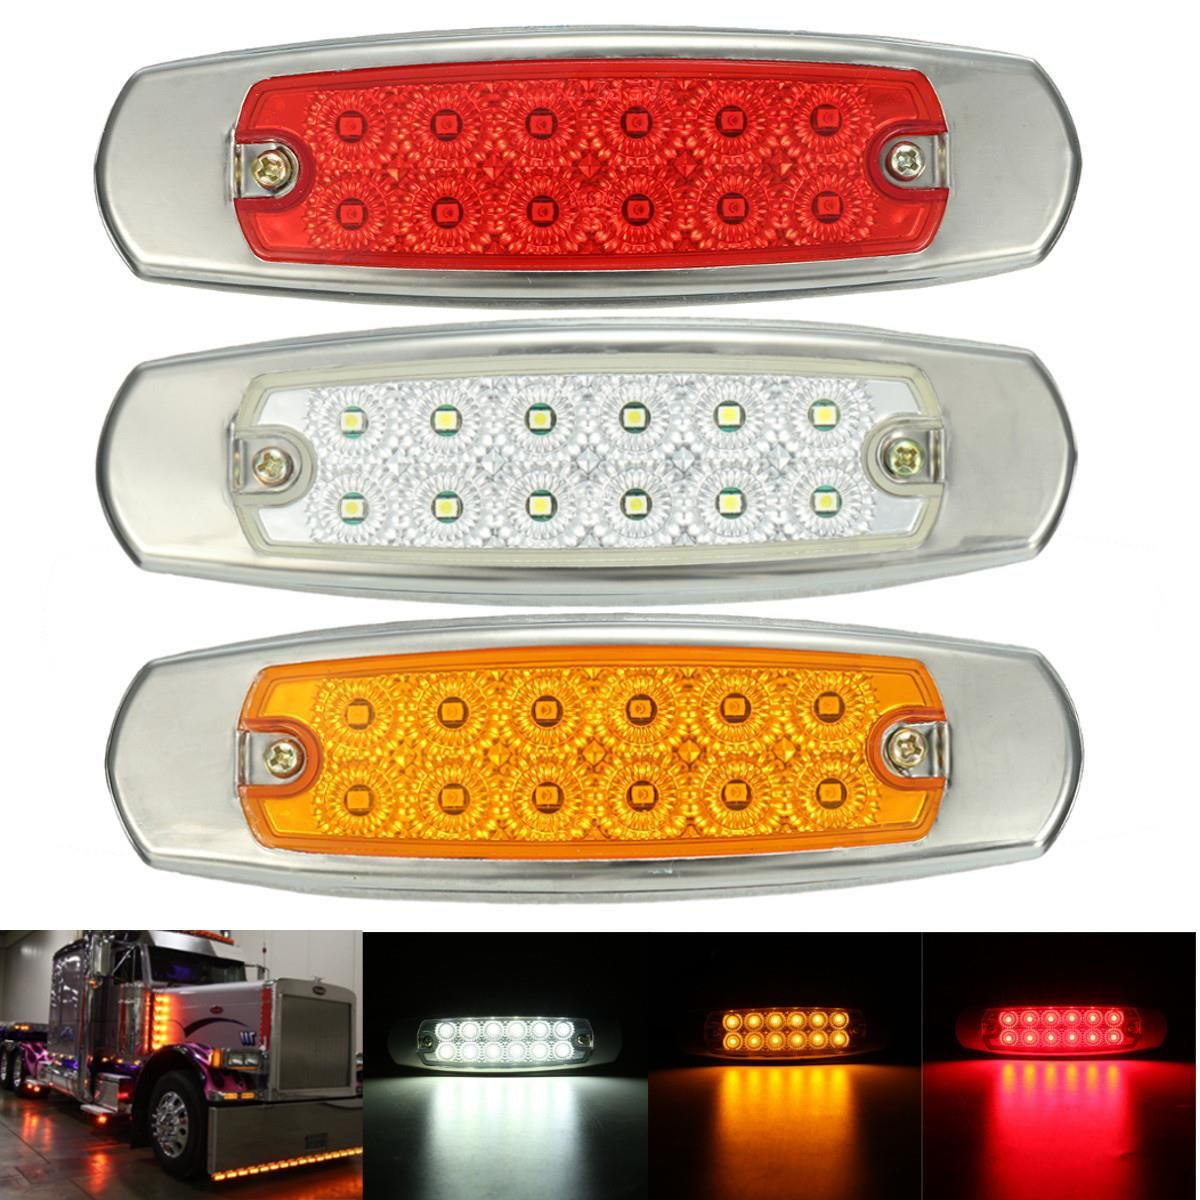 1pcs Universal 12v Dc 12 Led Side Marker Indicator Light Lamp Truck Trailers Lorry Bus Truck And Trailer Indicator Lights Lorry